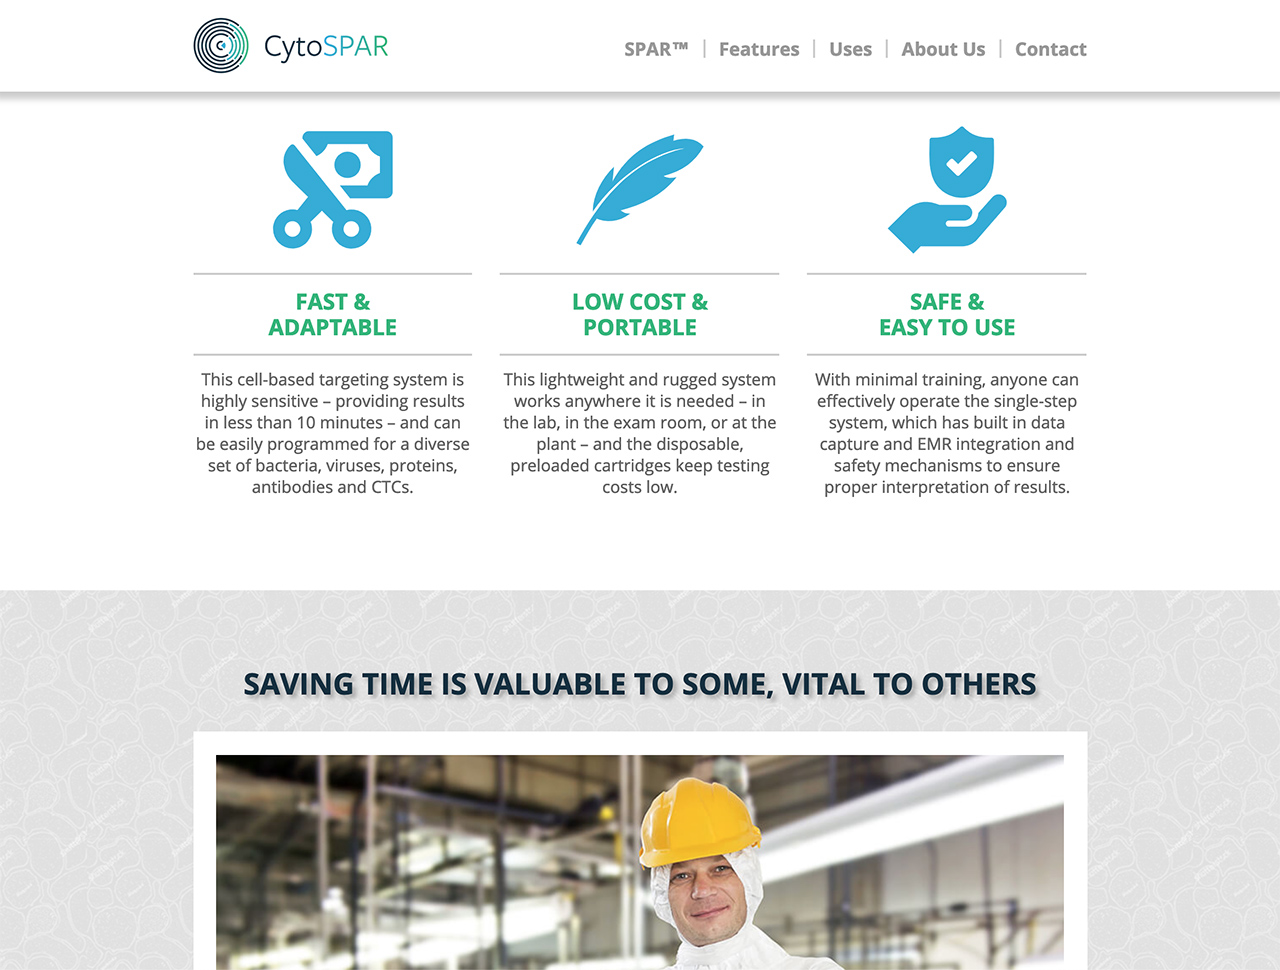 cytospar-2reveal-website-02.jpg